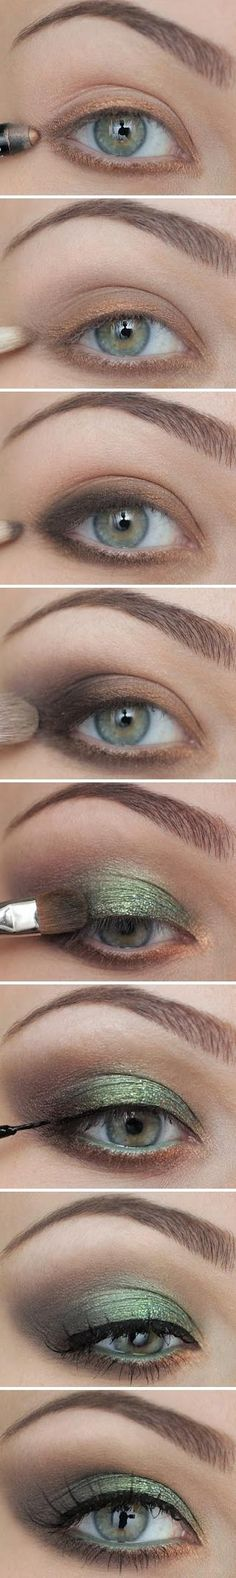 Smokey eye with green *